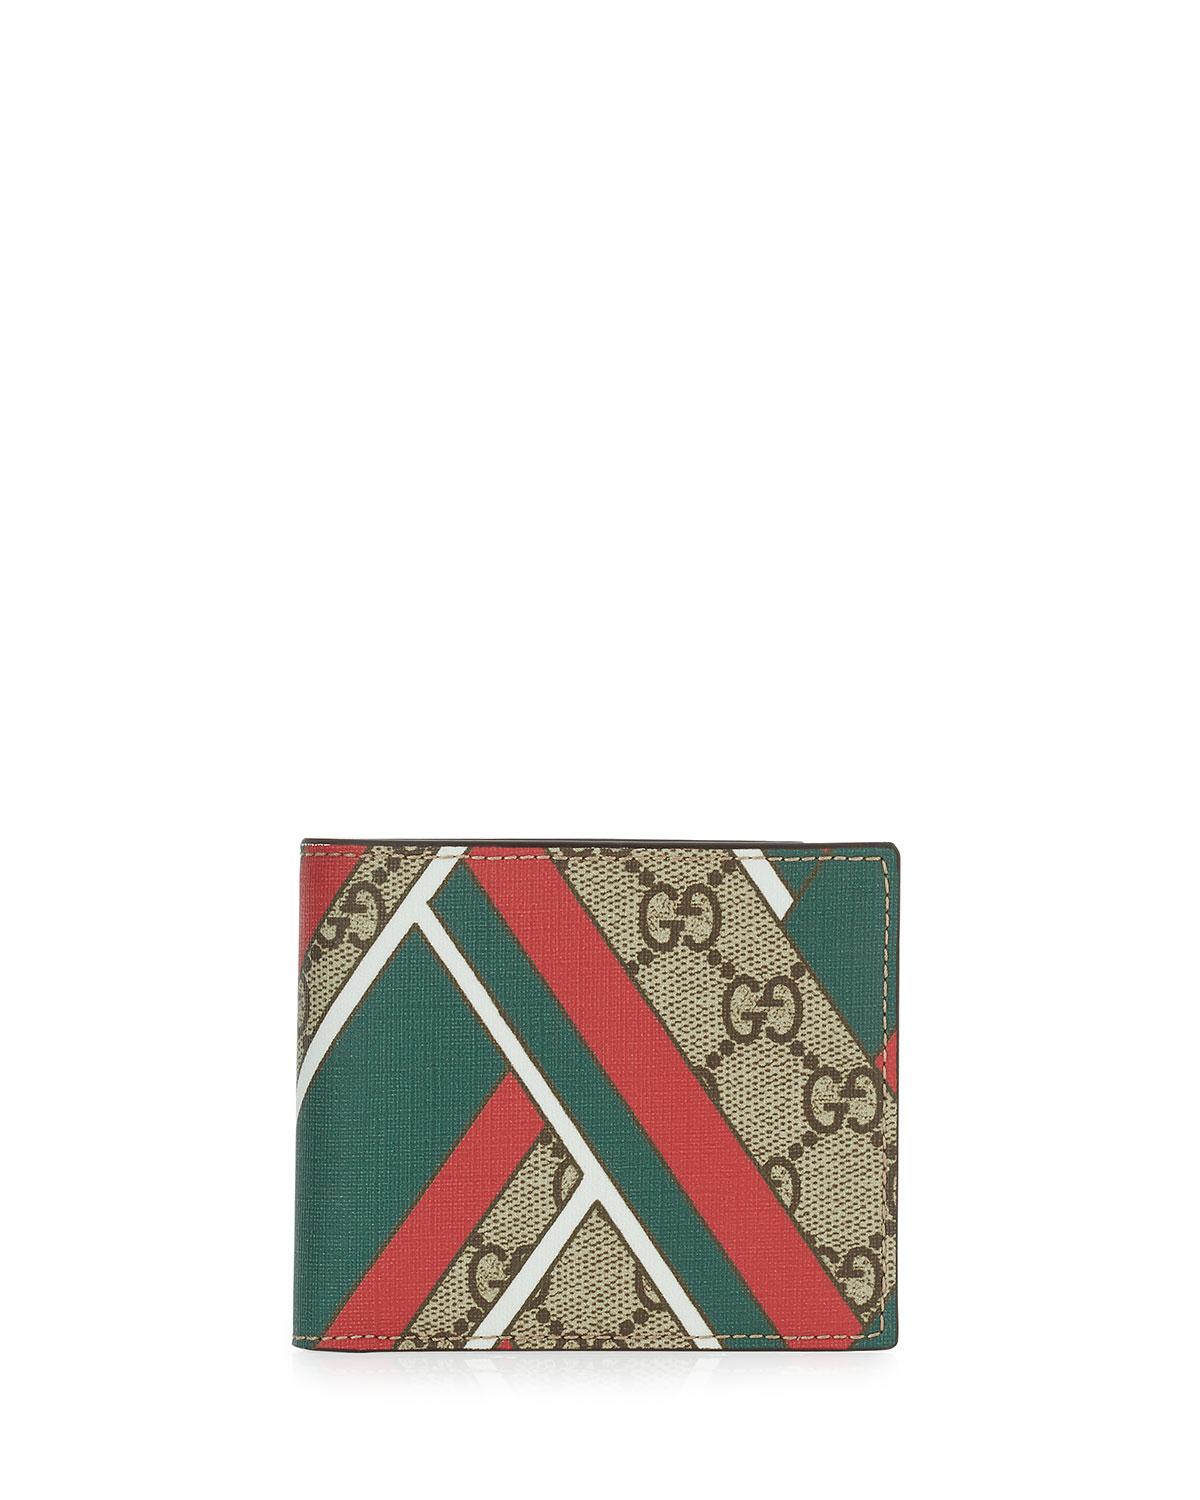 54f0efd5a747 Gucci GG Chevron Canvas Bi-Fold Wallet, Red/Green | Neiman Marcus